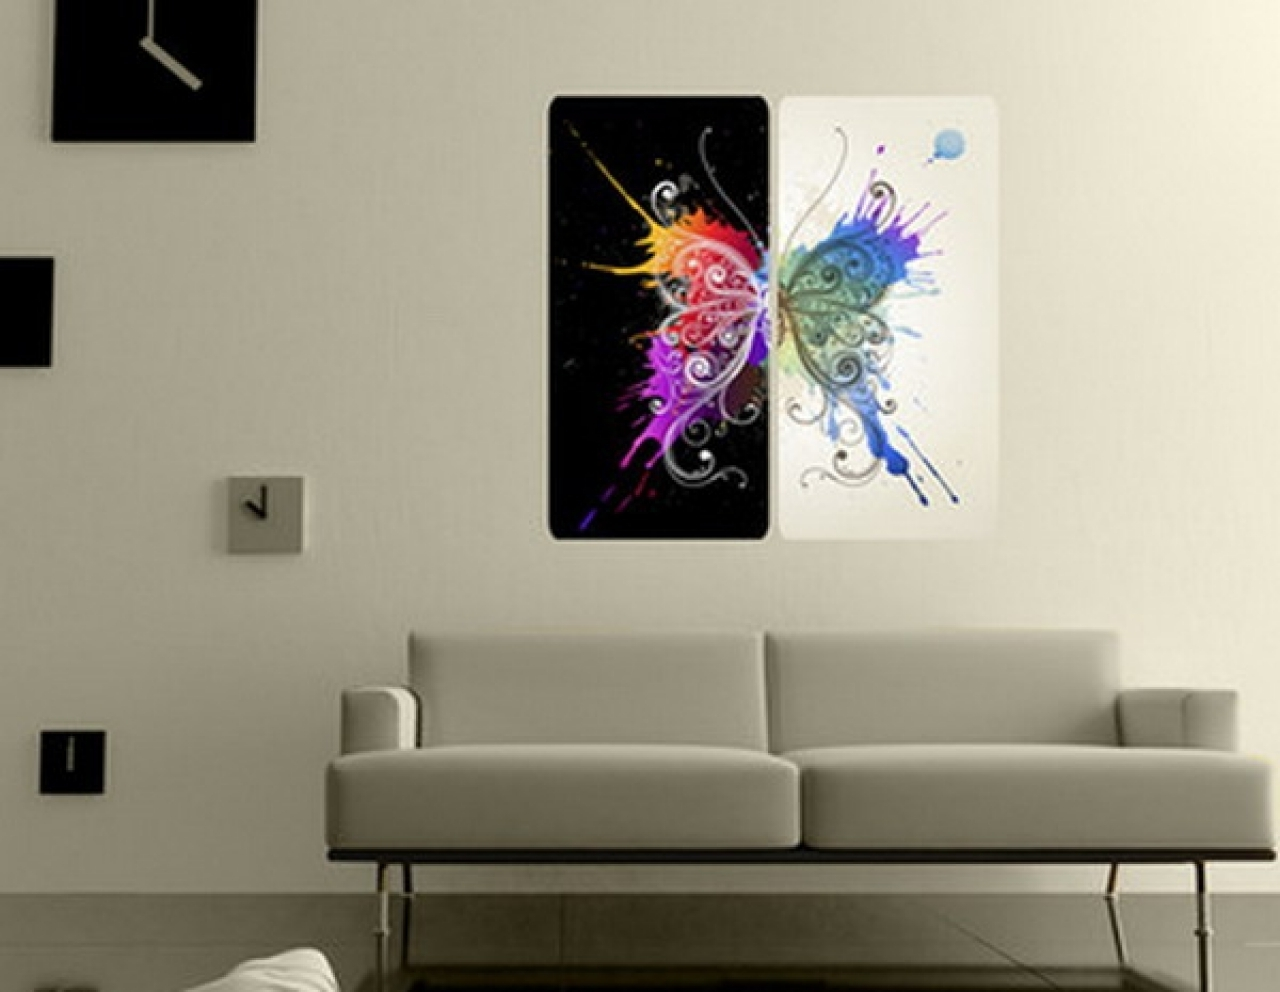 Contemporary Wall Art Inside Most Up To Date Contemporary Wall Sculptures Ideas — All Contemporary Design (View 2 of 15)